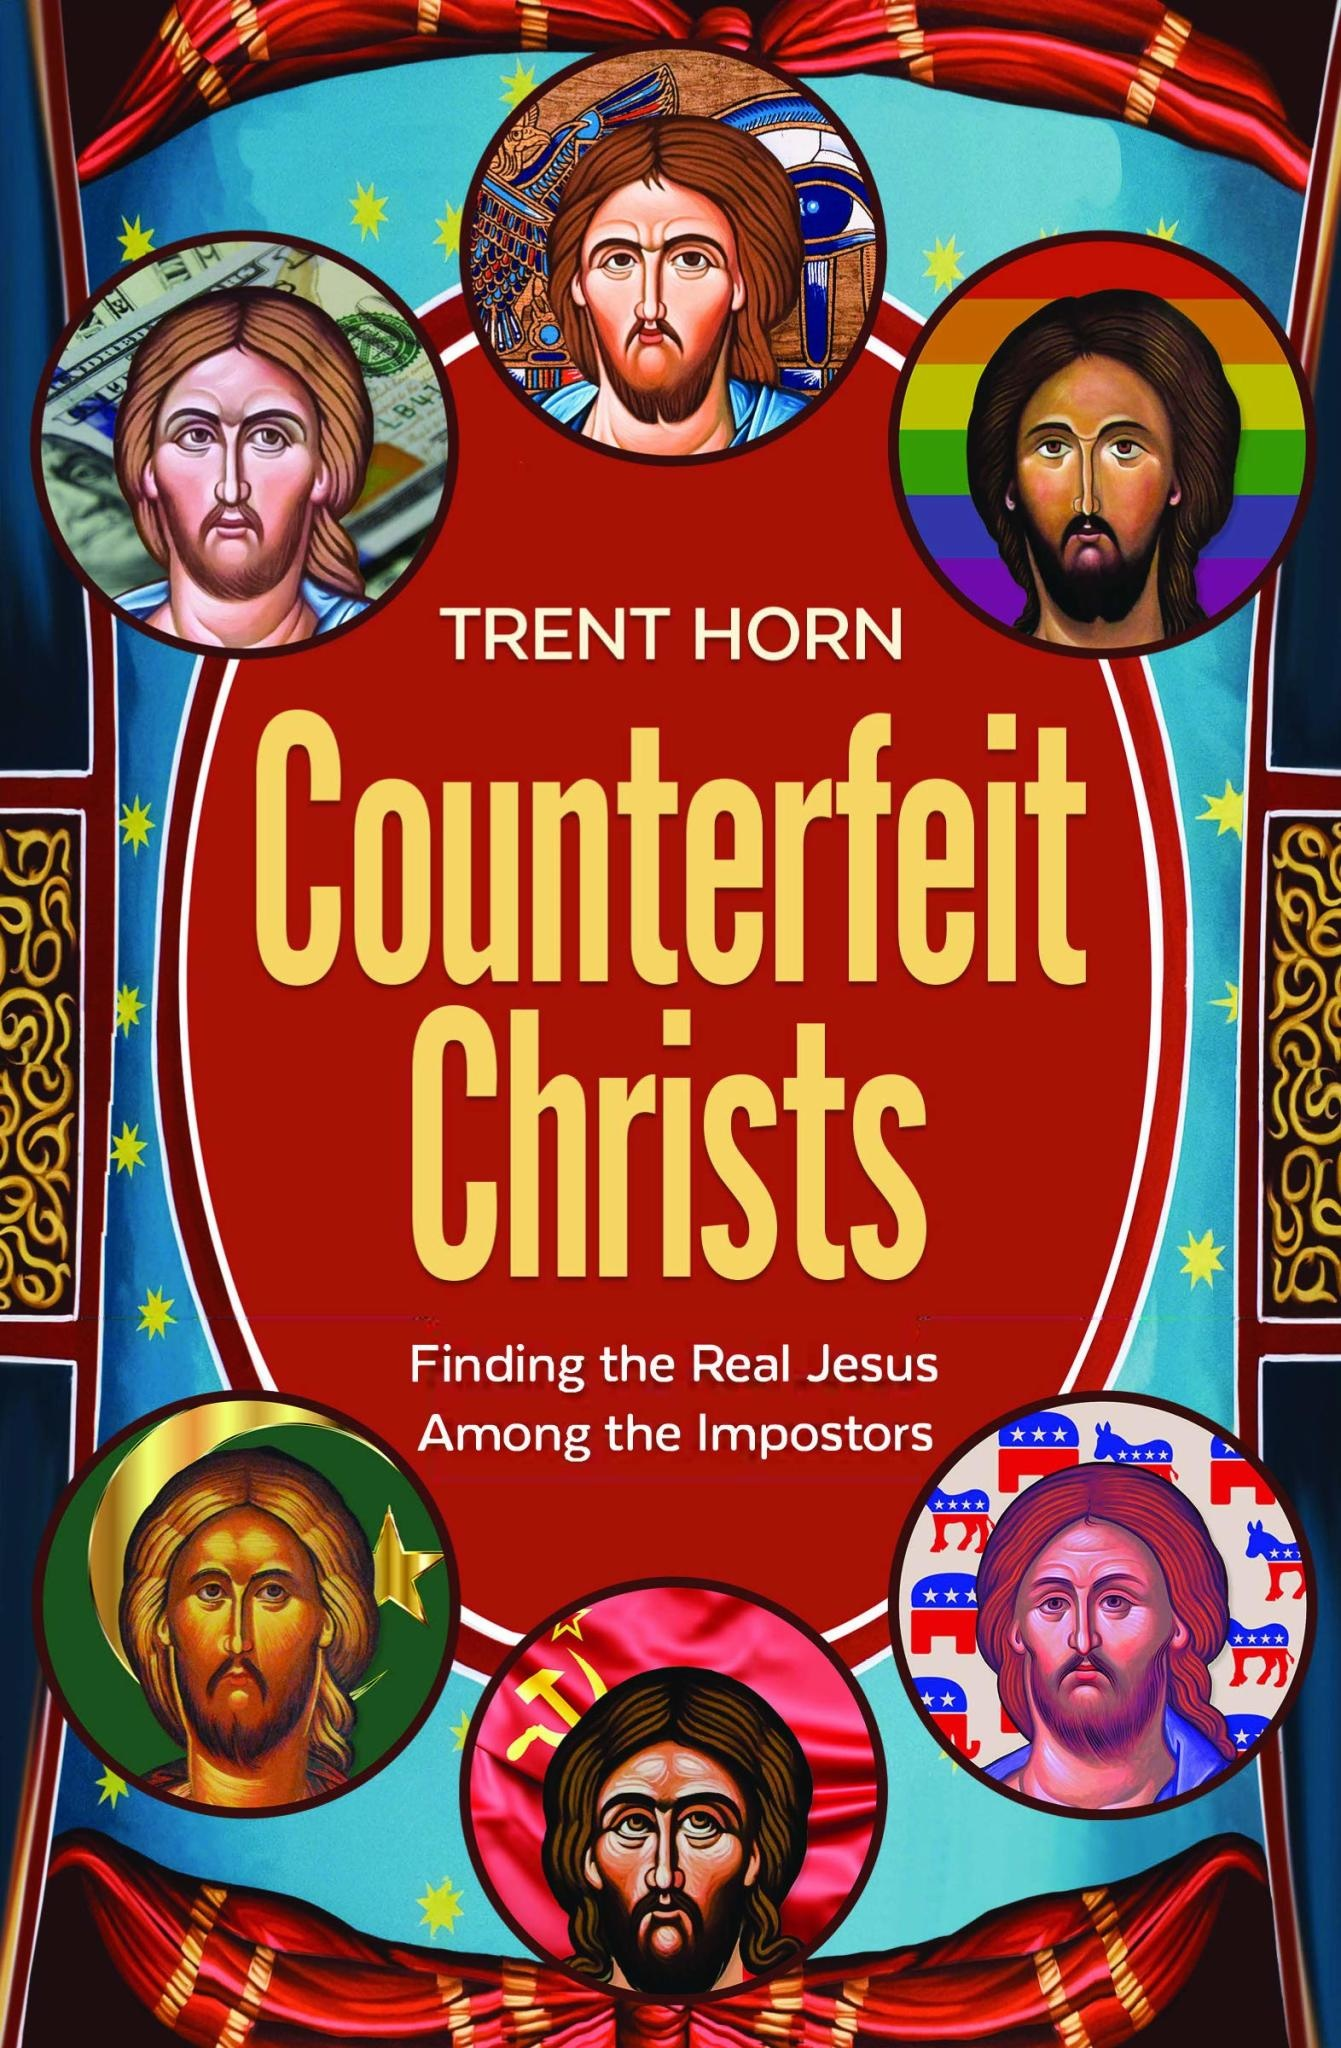 Catholic Answers Counterfeit Christs - Finding the Real Jesus Among the Impostors